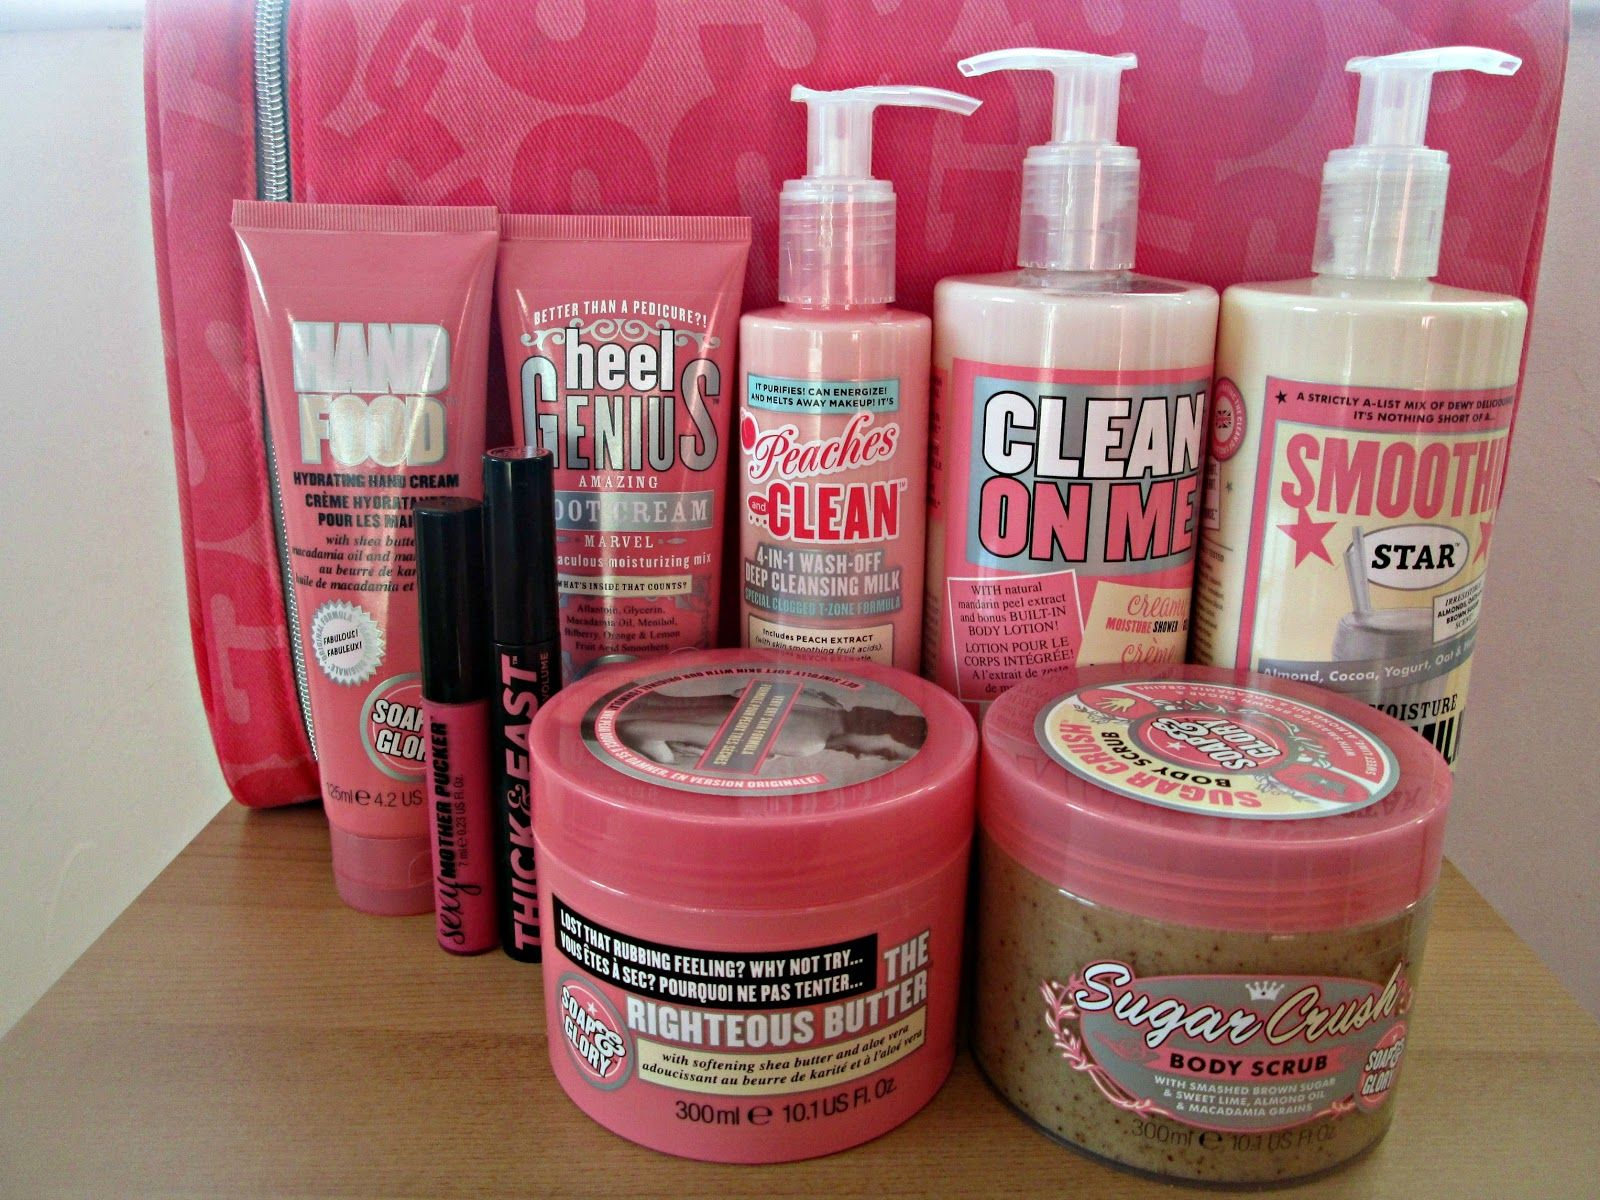 Soap and Glory beauty gift set. Body scrub, Bottle, Cleaning